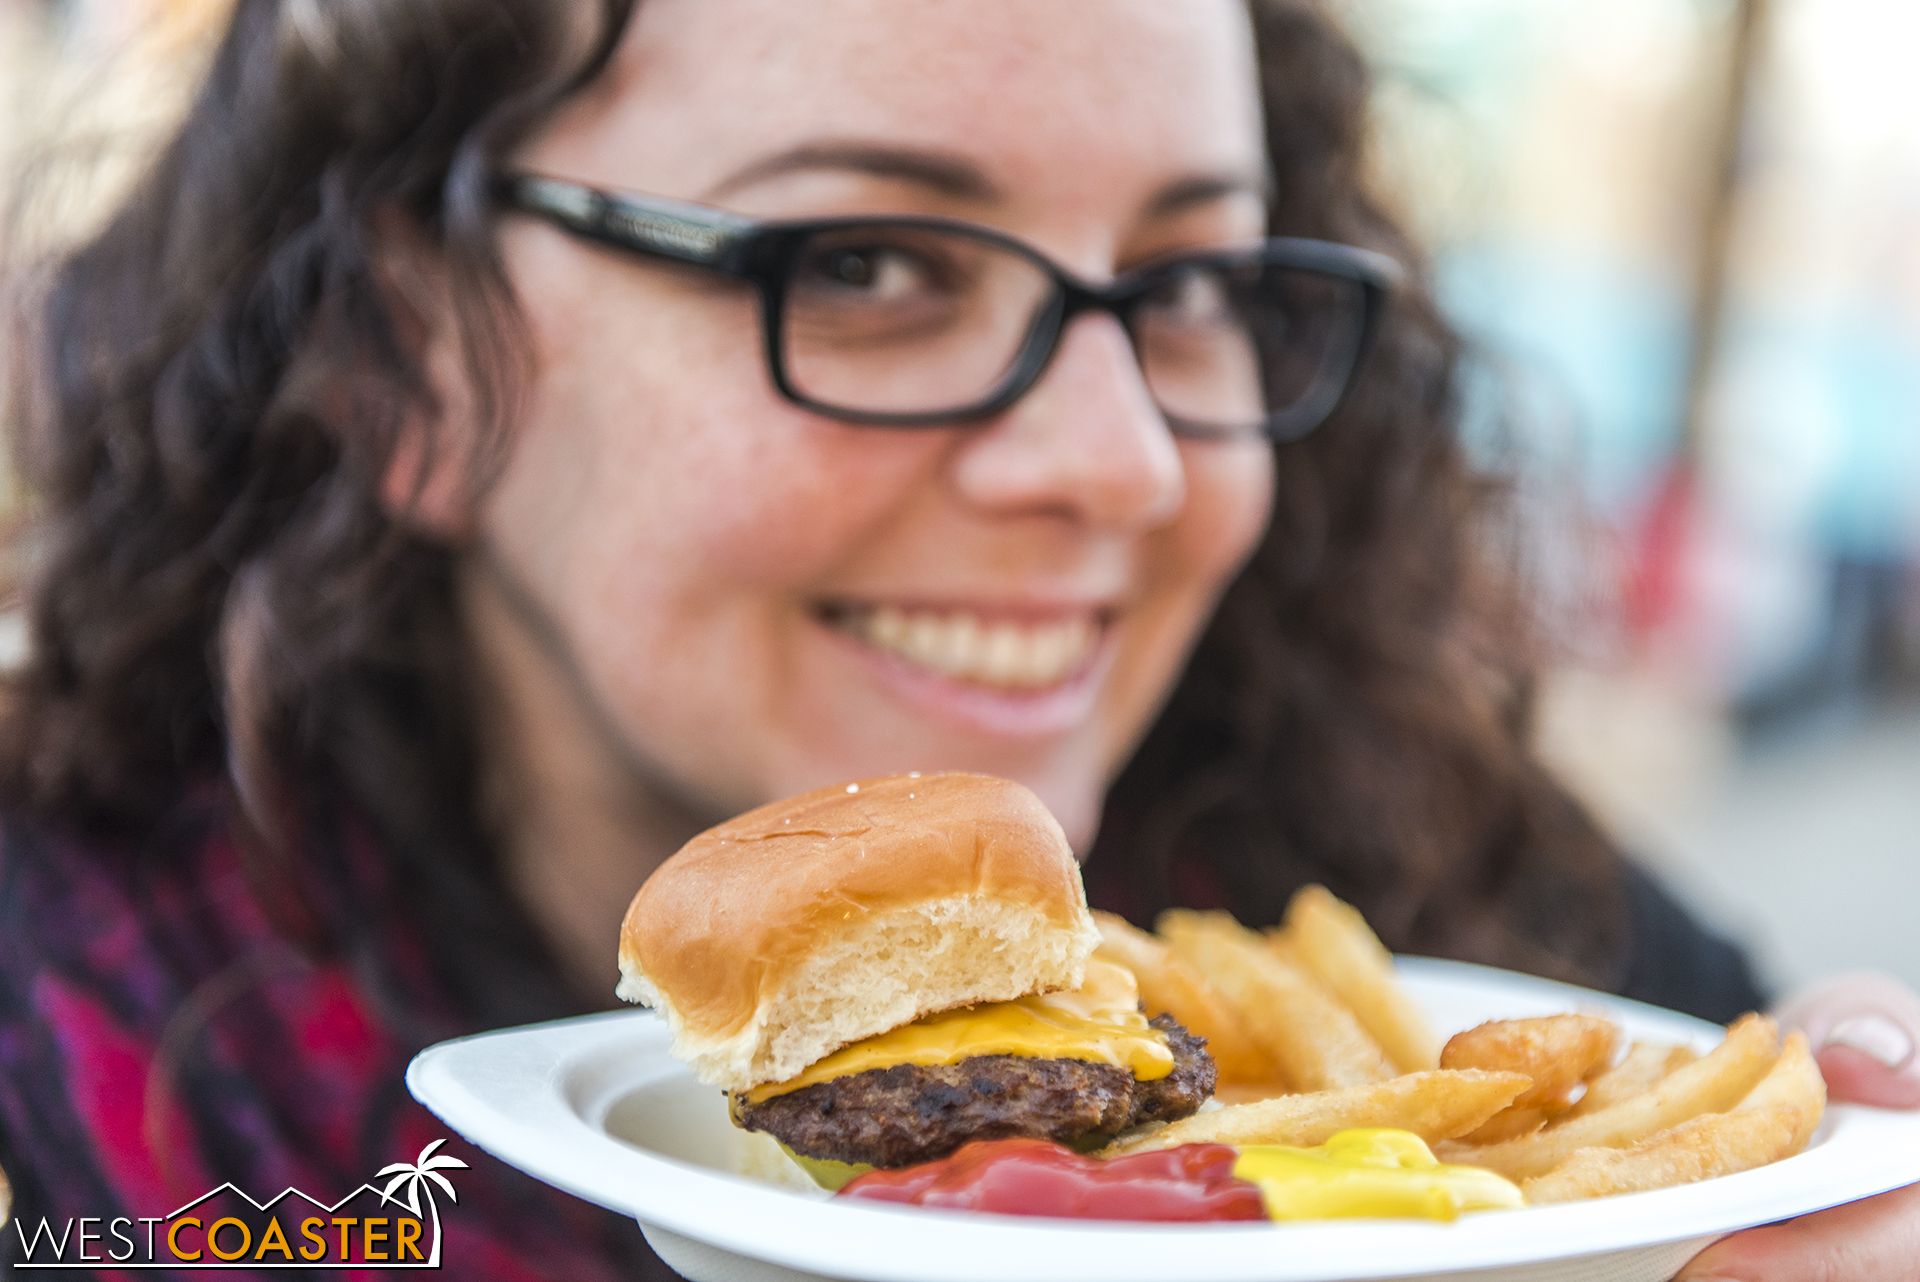 Coasters featured tasty sliders, as modeled by our lovely Jenny O.